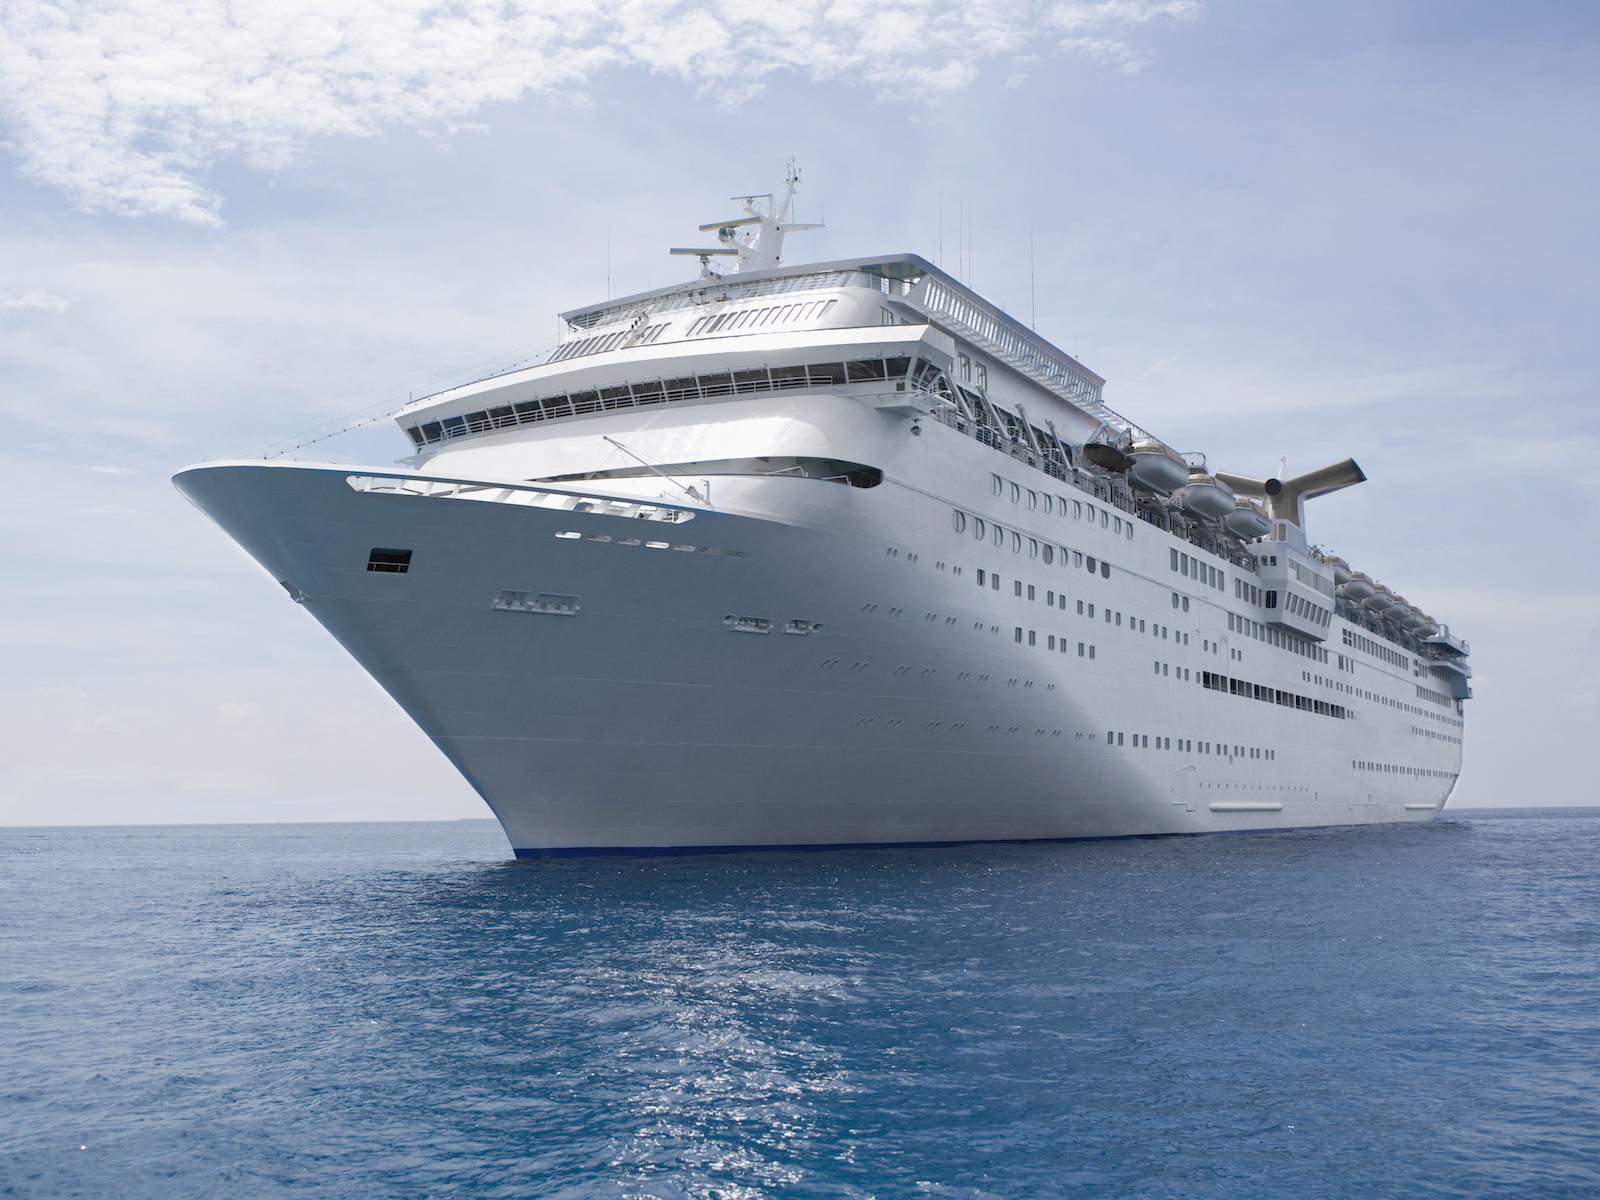 Royal Caribbean cancels Empress of the Seas sailing due to Hurricane Irma